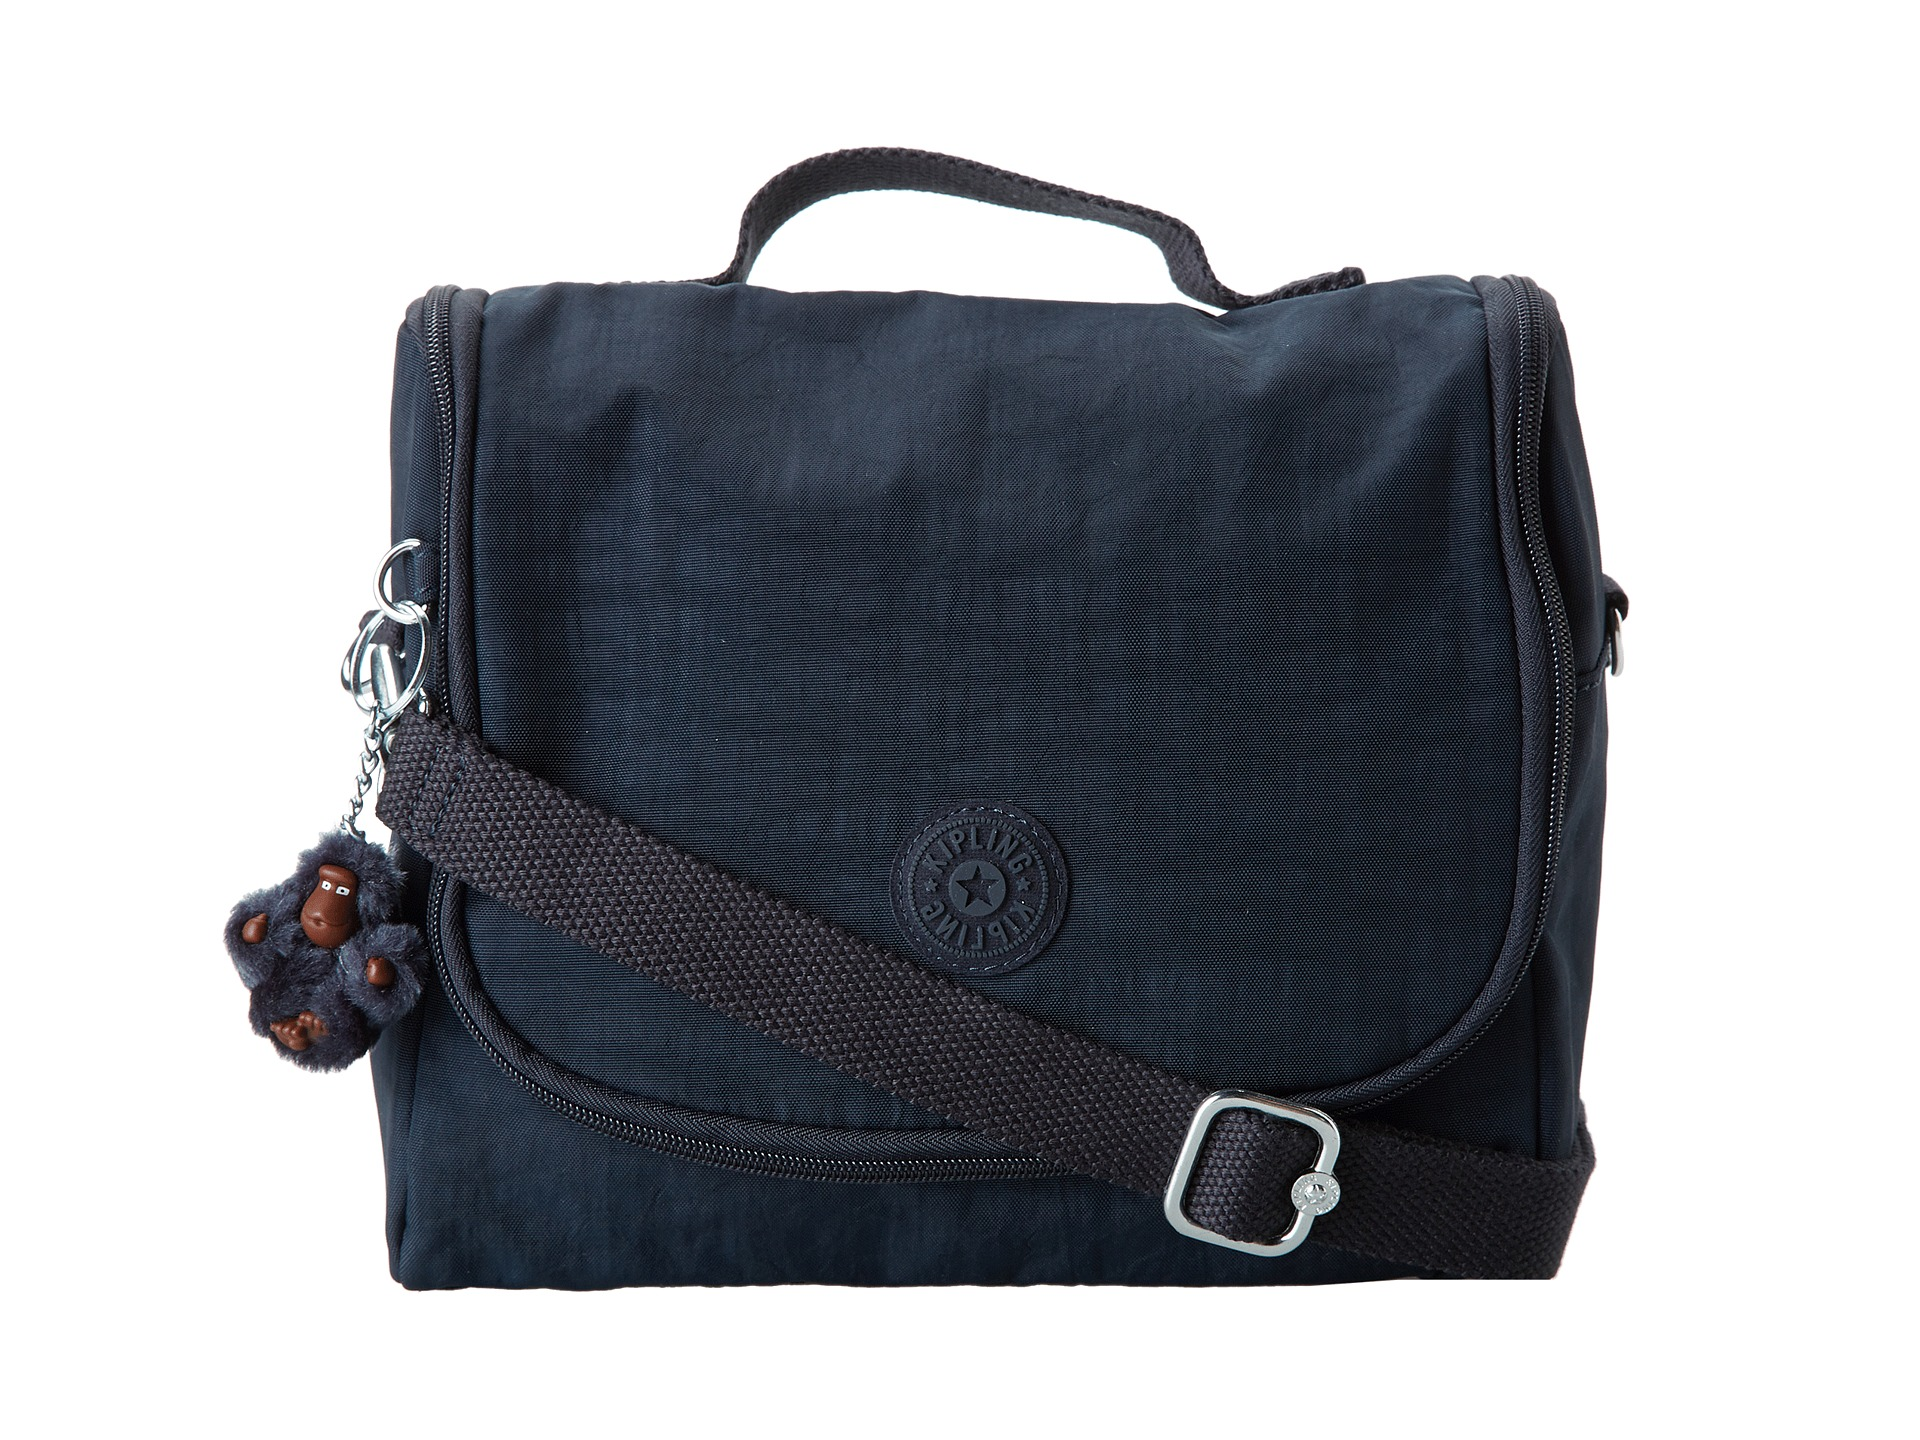 Kipling Bags. Kipling bags aren't like your average bag. They're the perfect intersection of fun and functional, lightweight and long-lasting. Shop colours and patterns that exude effortless confidence, complete with lightweight materials and intuitive functionality that make a dream relbornbingzarword.gq: (0)